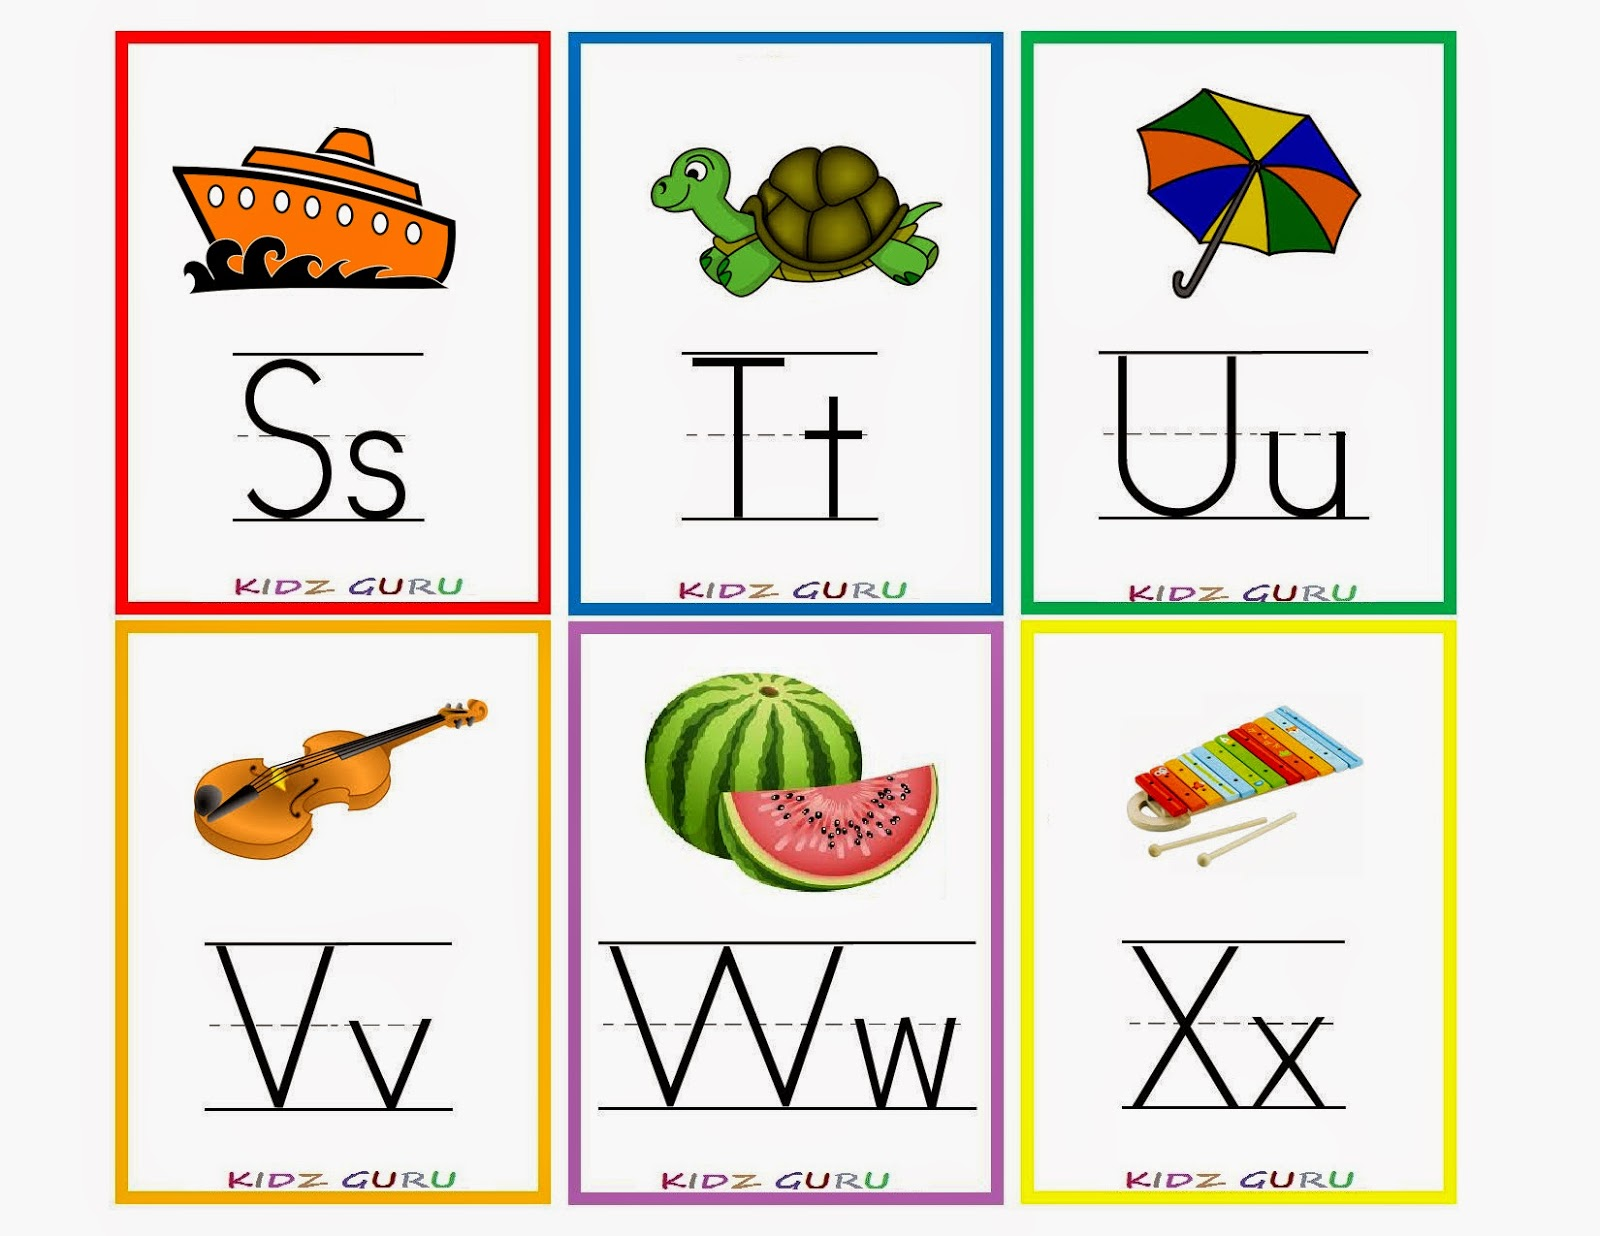 image regarding Printable Alphabet Flash Cards titled Kindergarten Worksheets: Printable Worksheets - Alphabet